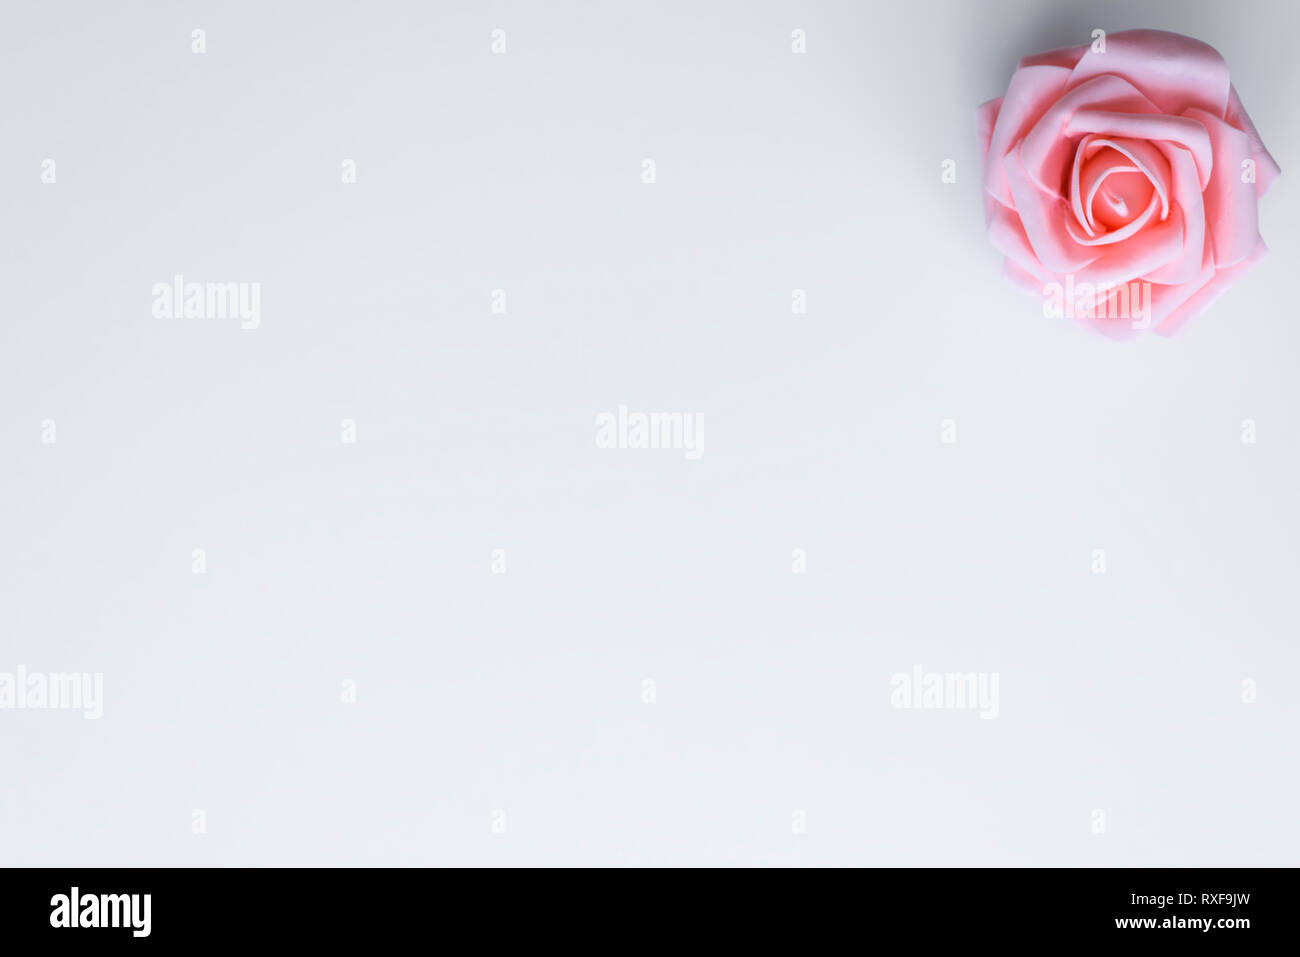 Single rose flower in pink color, lies on white background with copy space for Happy Valentines Day or Mothers wishes. Love concept. - Stock Image